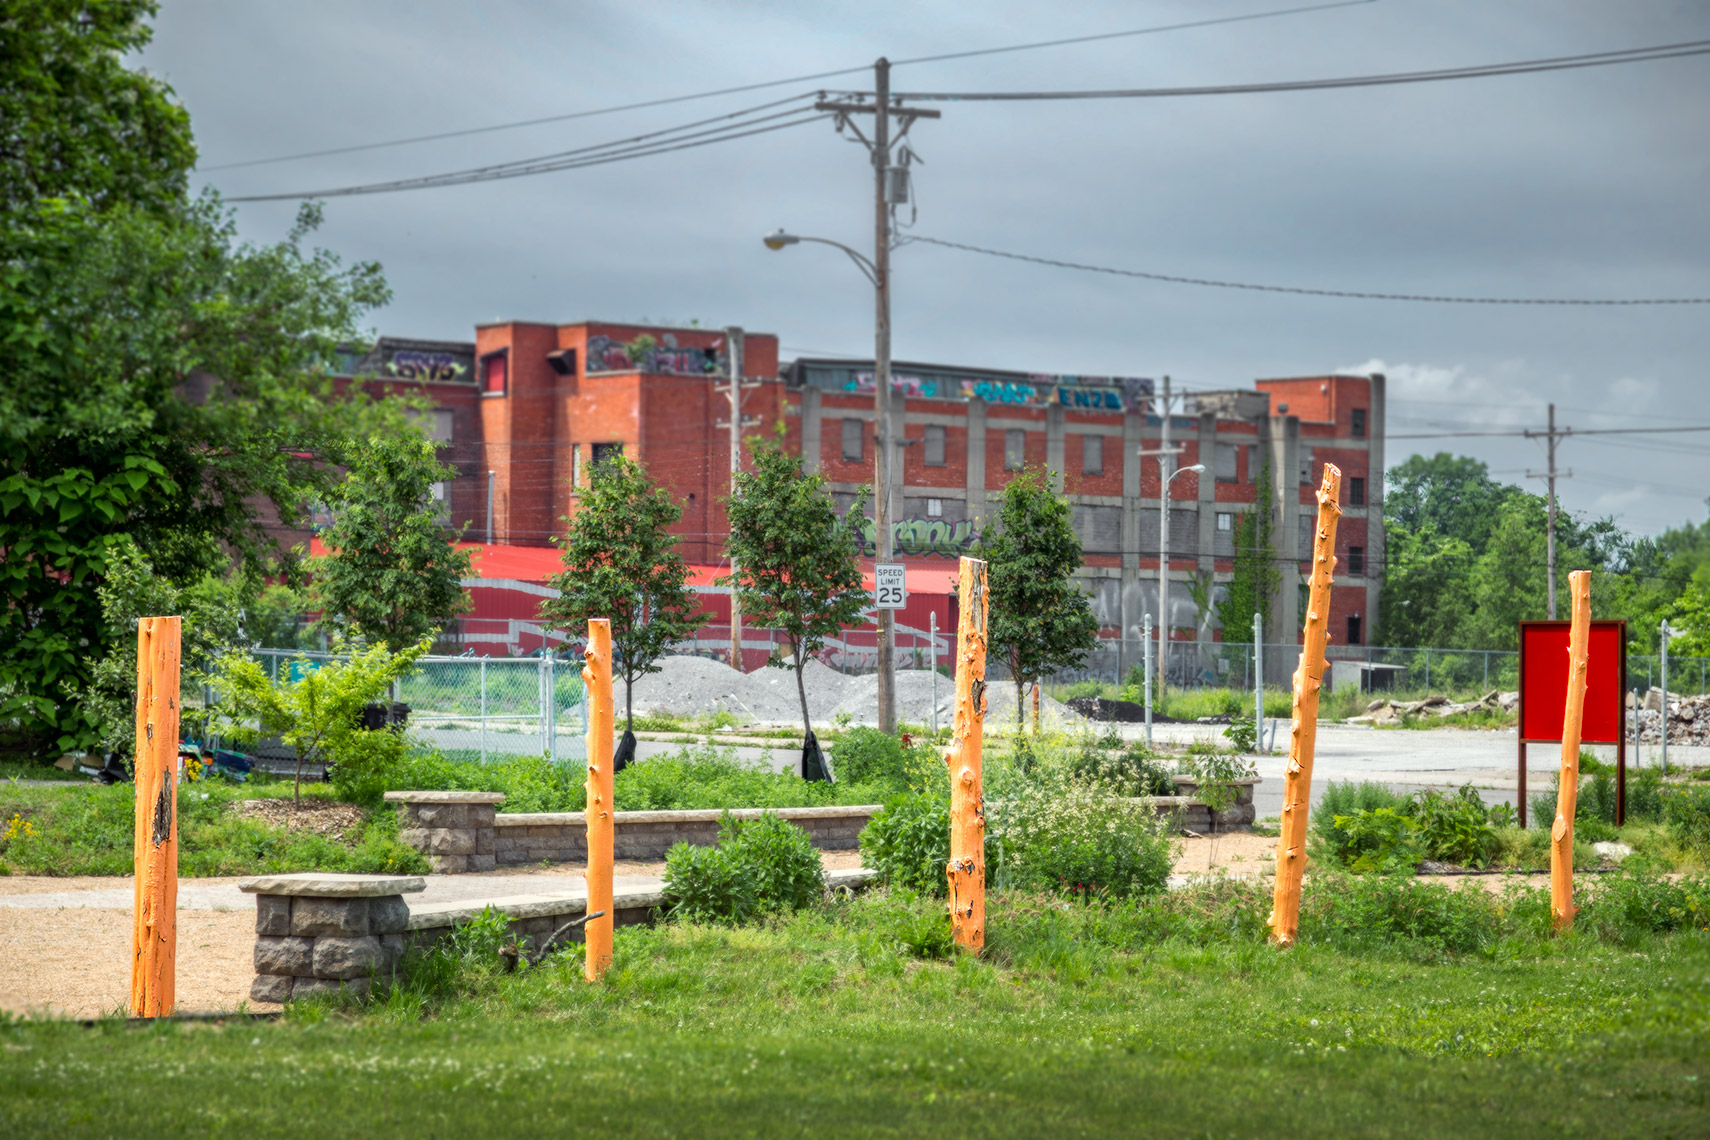 garden plots and design elements at urban park vacant lot